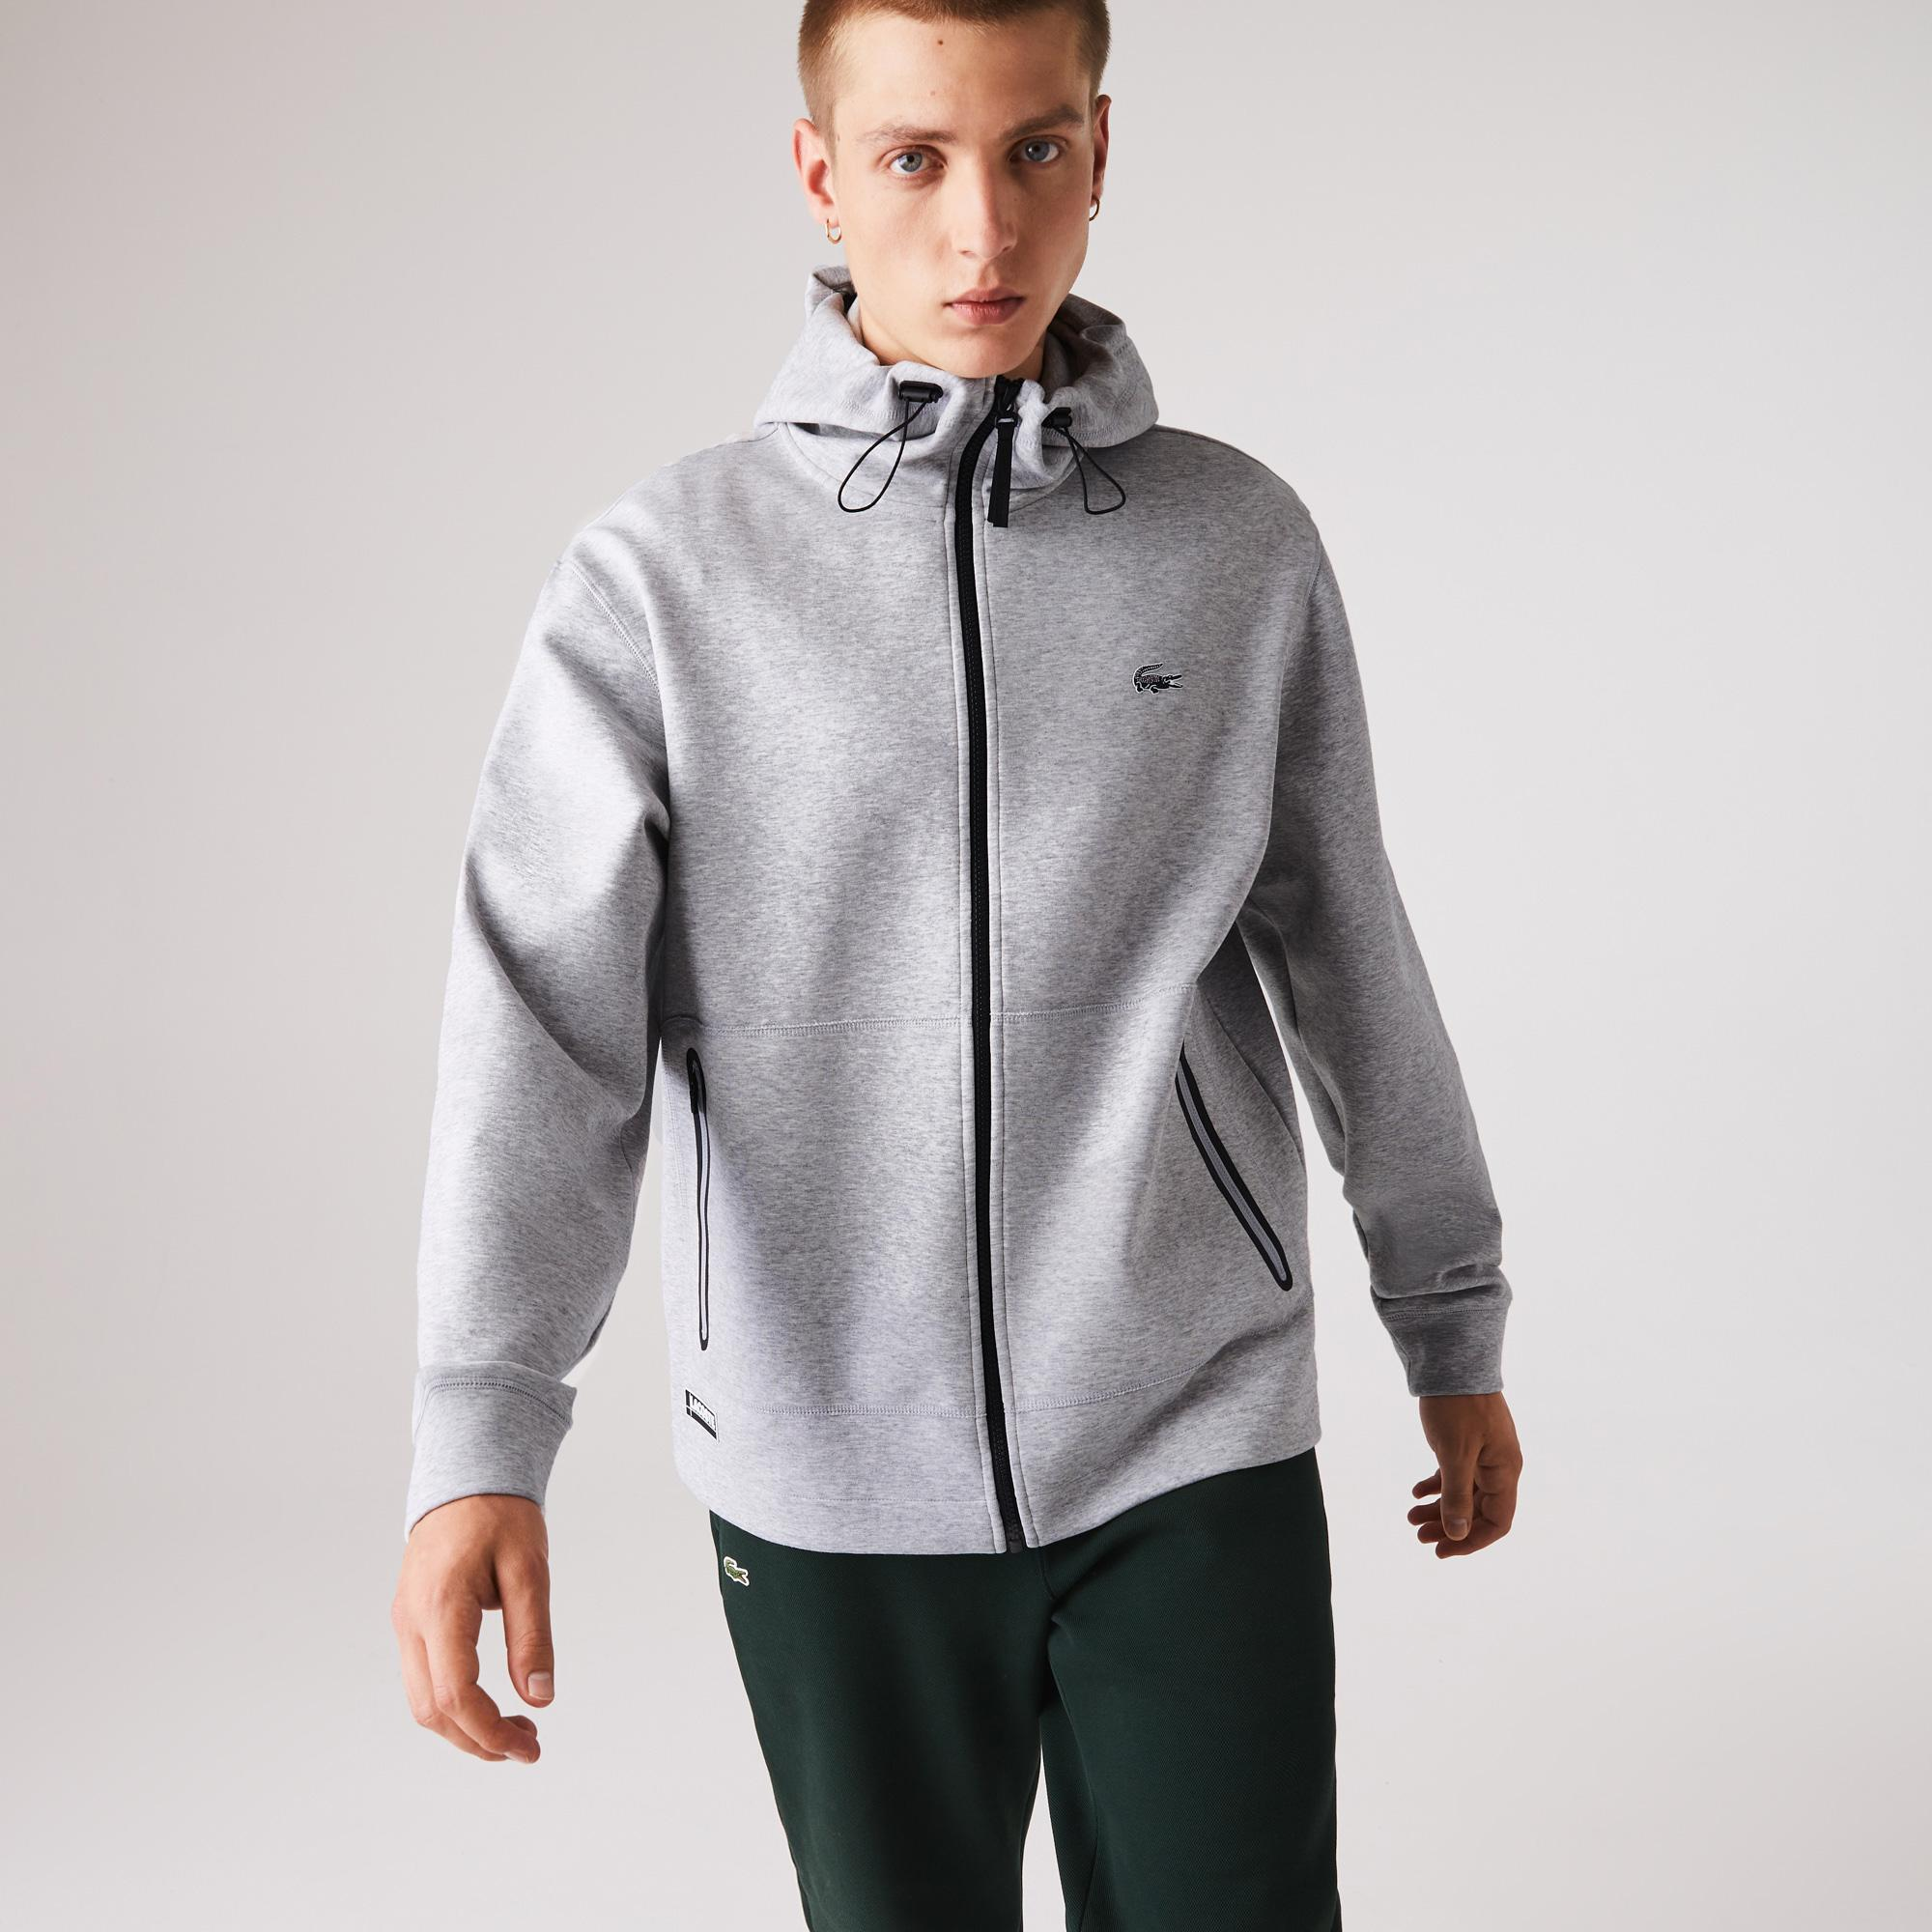 Lacoste Men's Branded Hooded Zippered Jacket With Badge